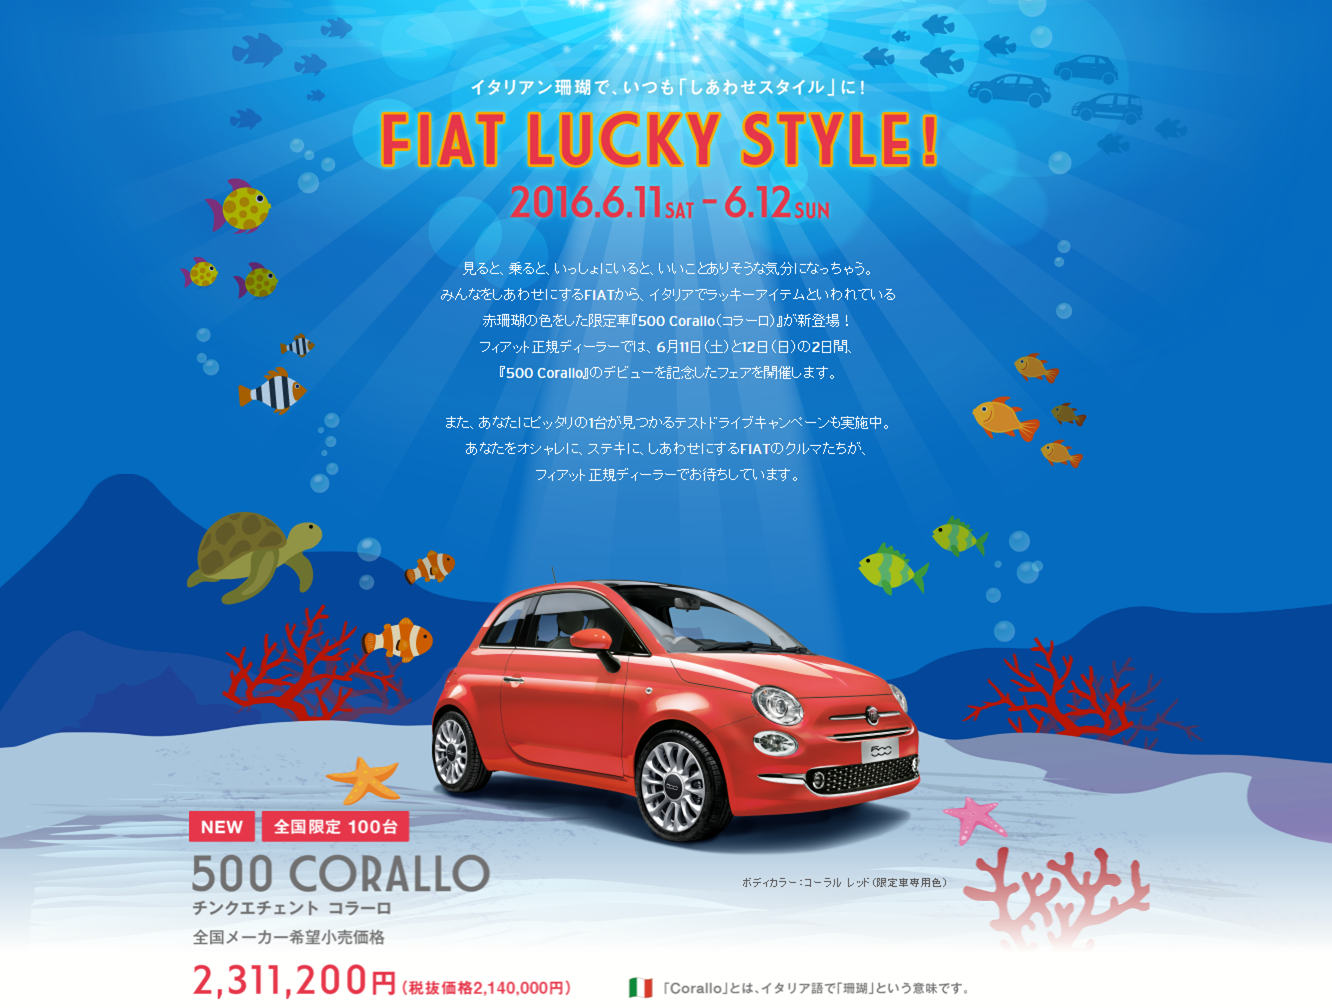 FIAT LUCKY STYLE